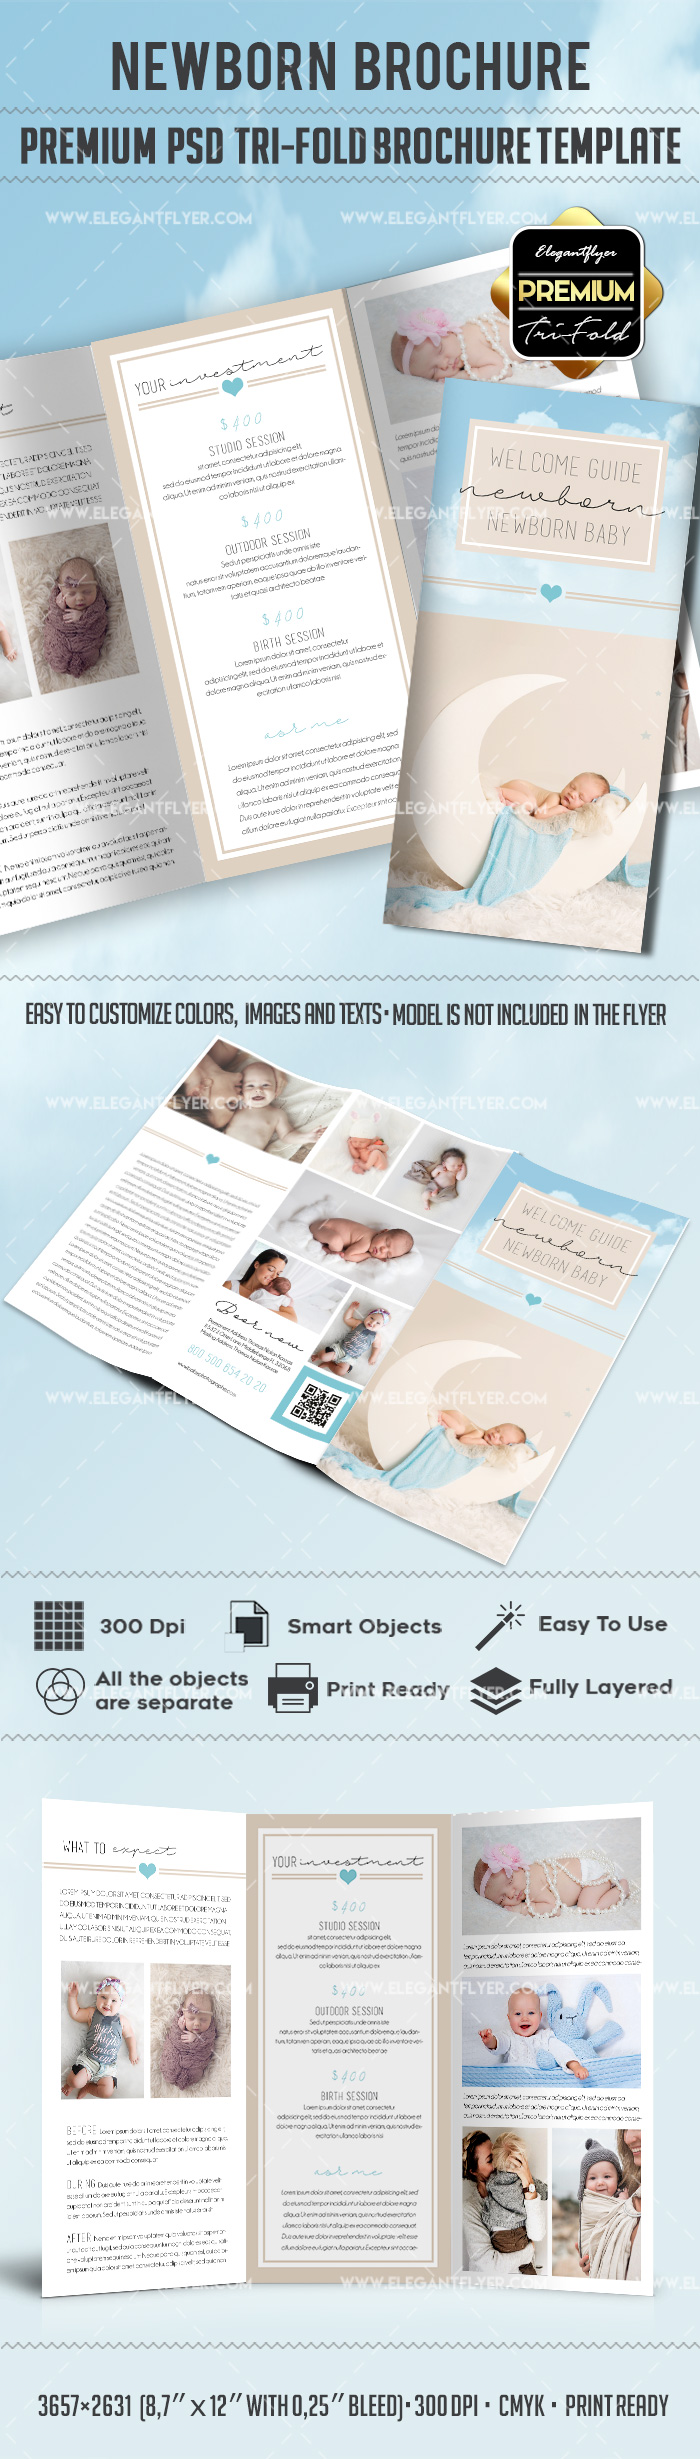 Template for Newborn Photography Poses Guide